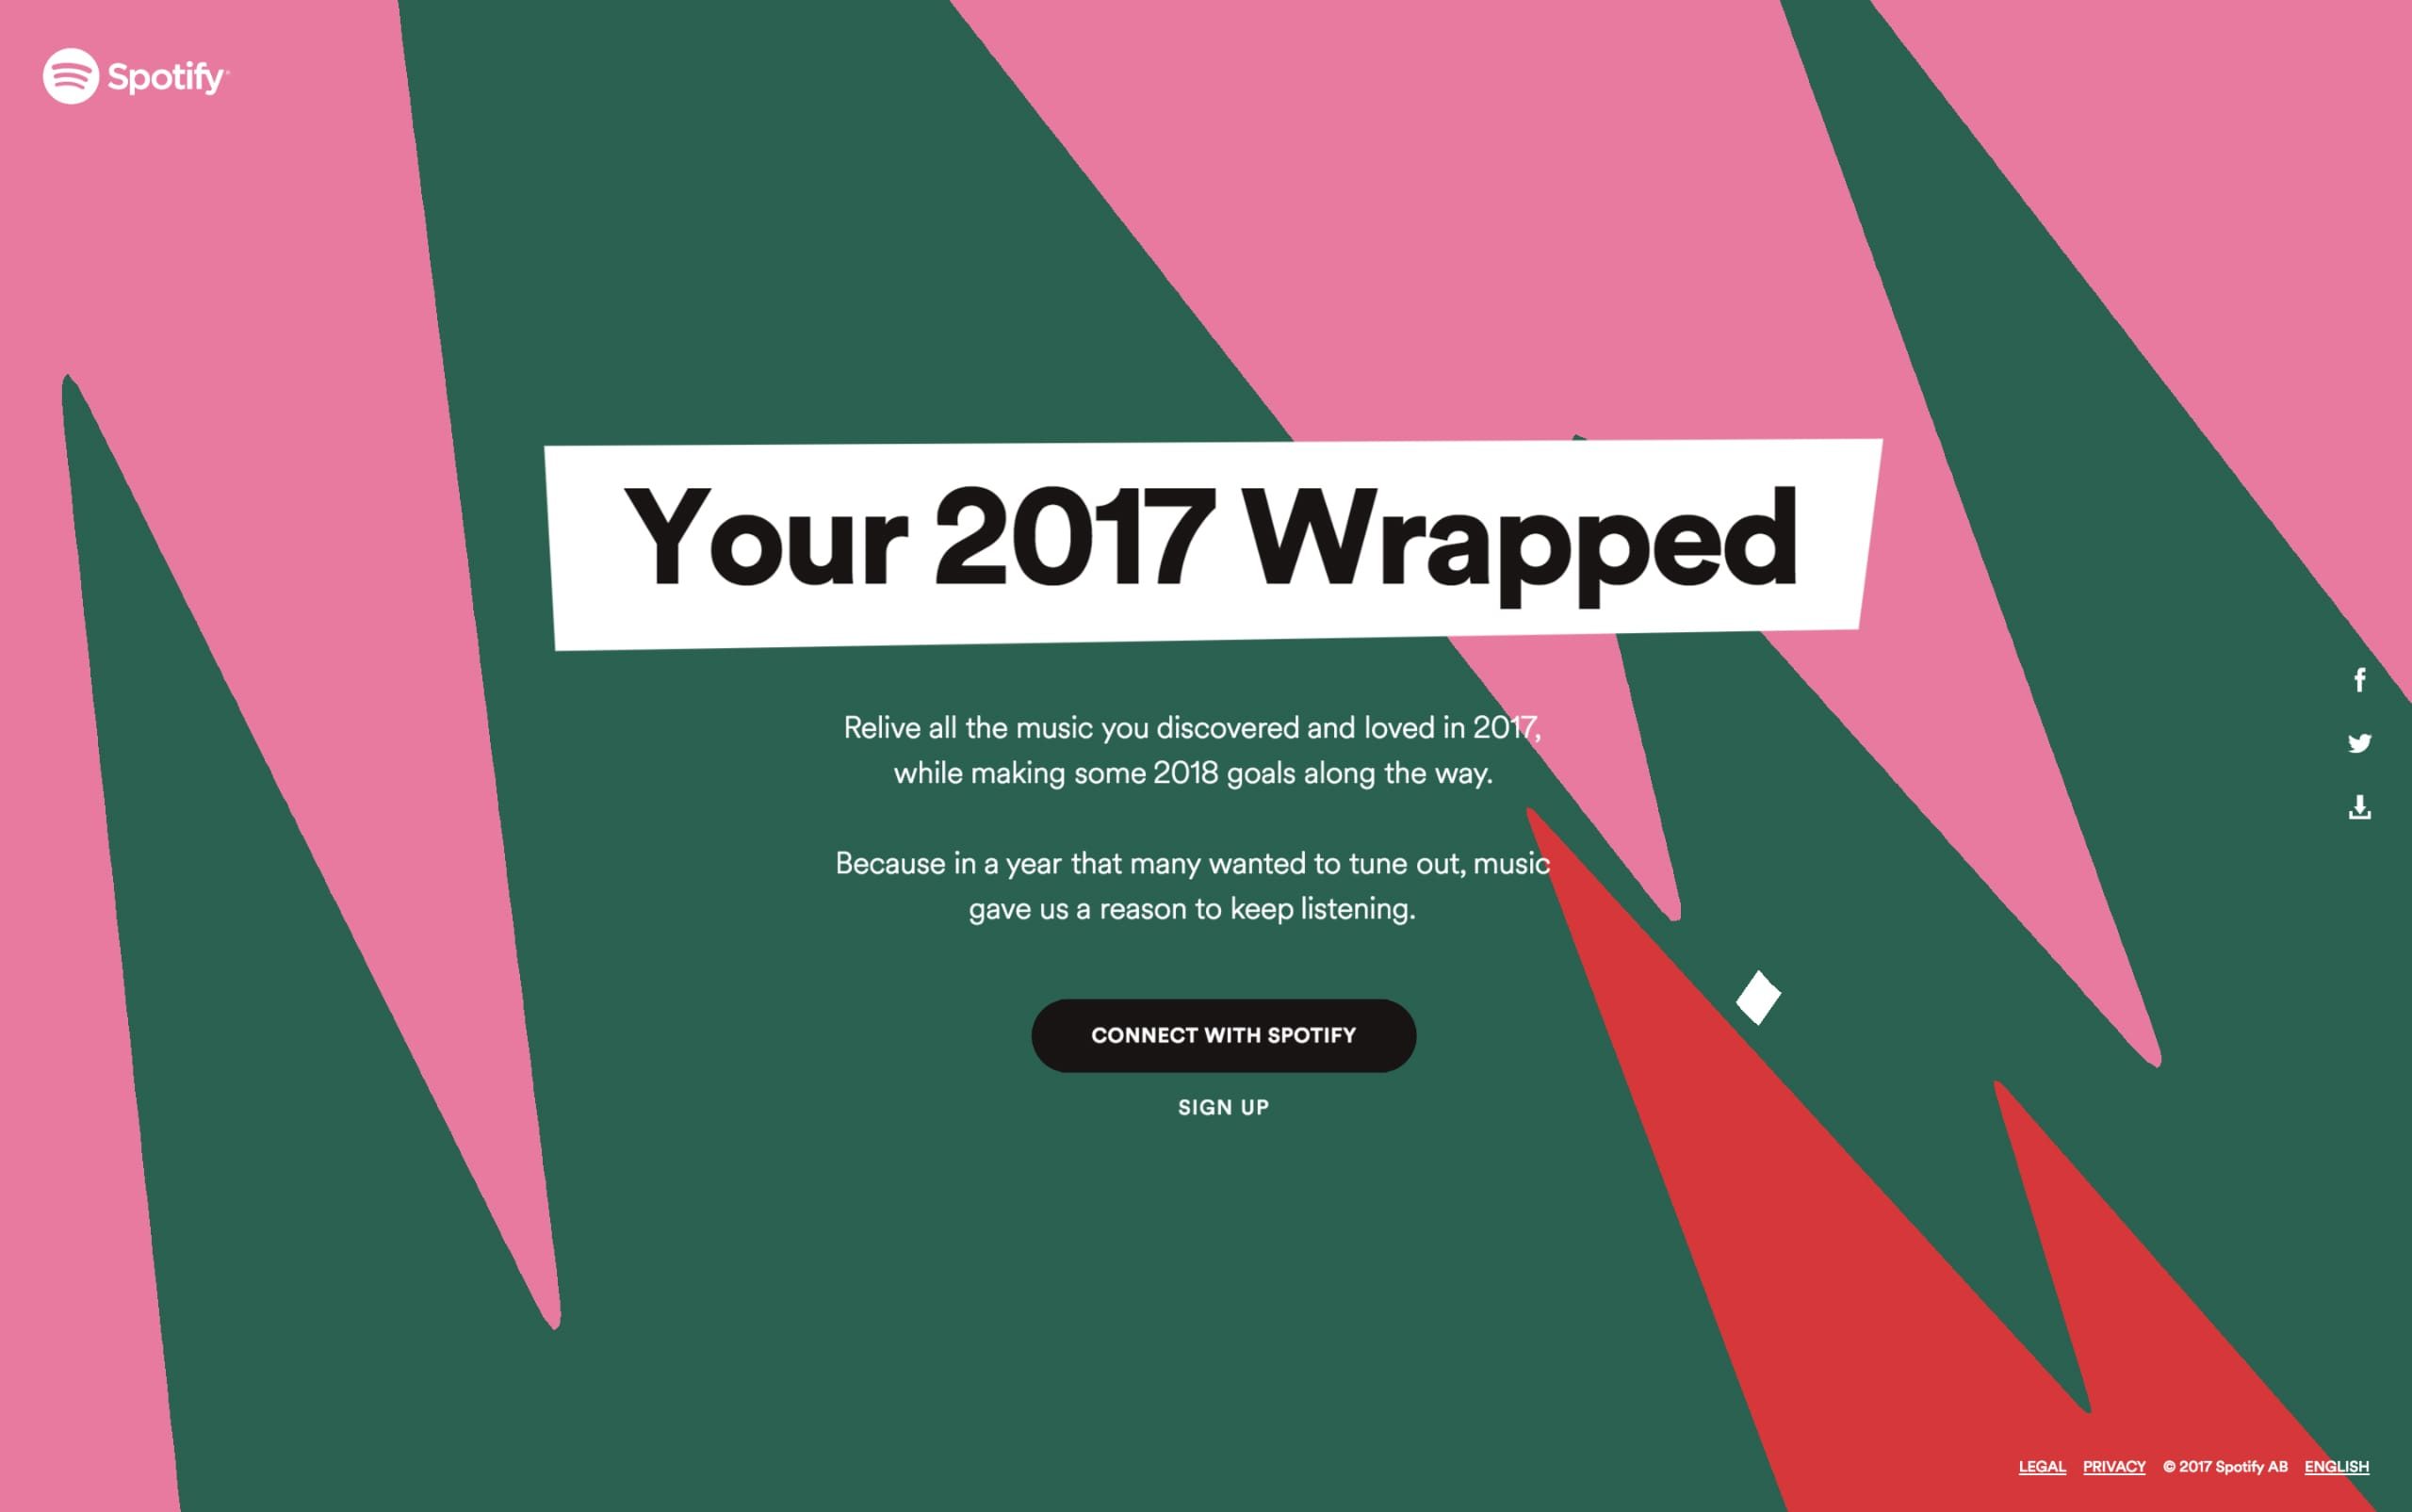 Your 2017 Wrapped Website Screenshot